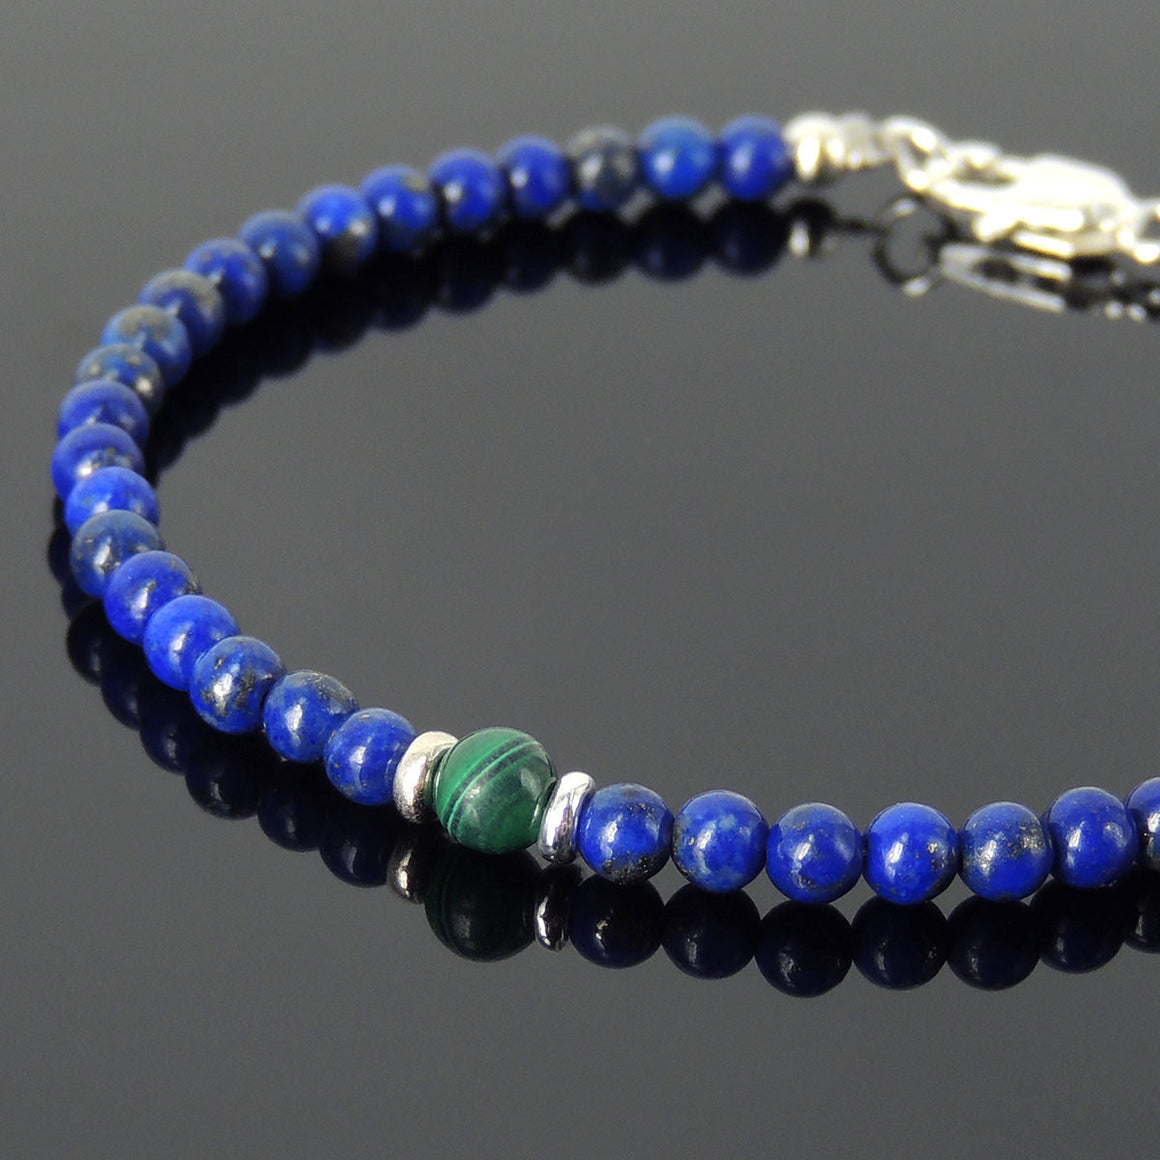 Lapis Lazuli & Malachite Healing Gemstone Bracelet with S925 Sterling Silver Spacer Beads & Clasp BR547